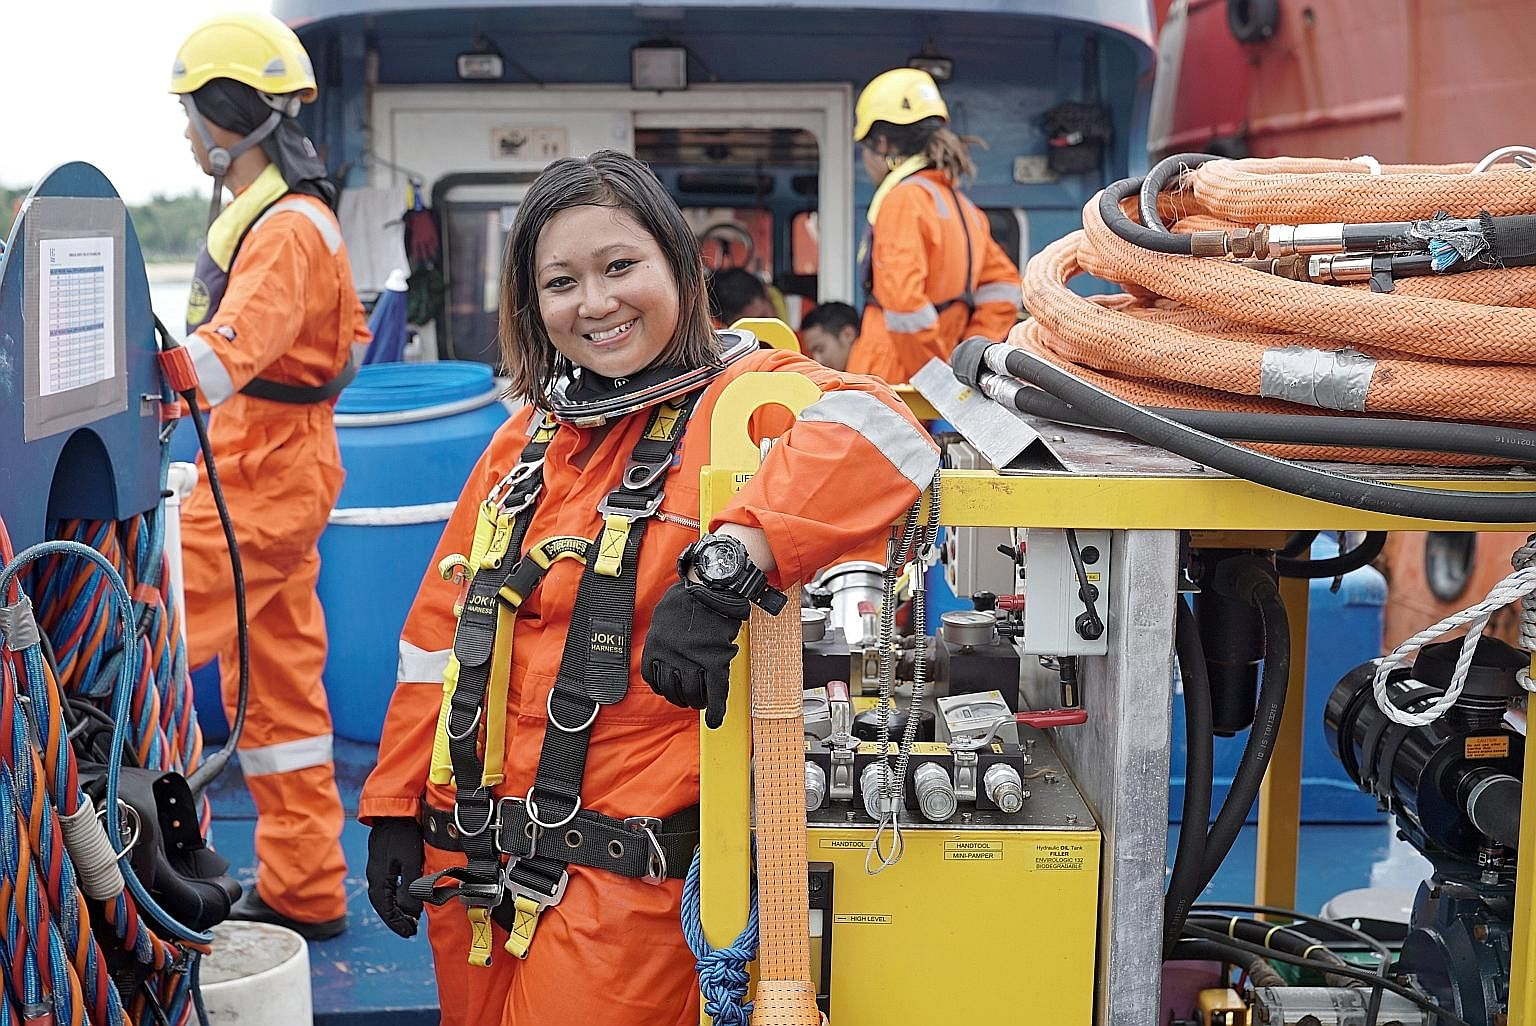 Ms Siti Naqiah Tusliman is the first female diver here certified to use specialised diving gear known as Surface-Supplied Diving Equipment for work purposes in Singapore waters. She joined an elite club of 63 divers who have attained the highest stan